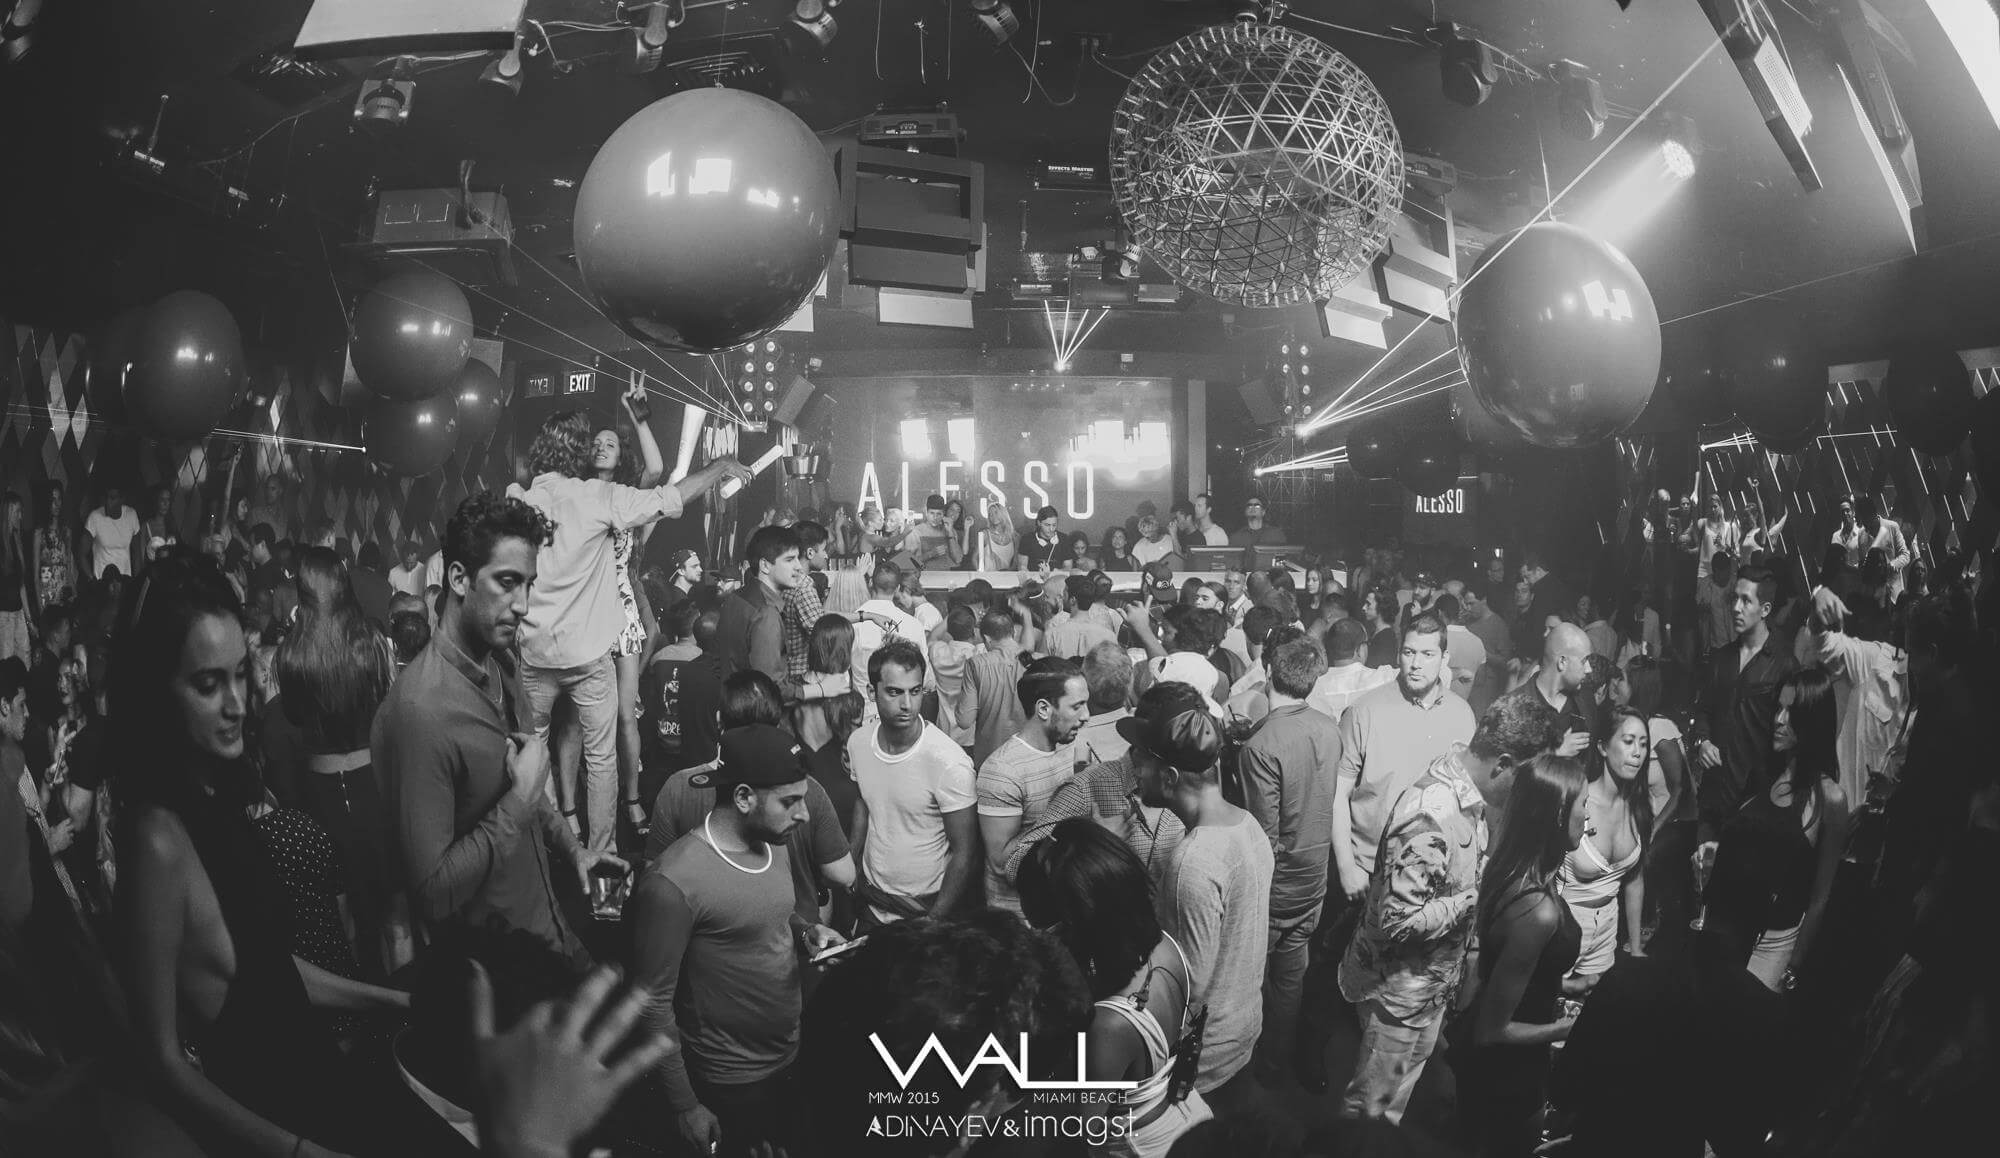 Alesso at WALL nightclub inside W South Beach